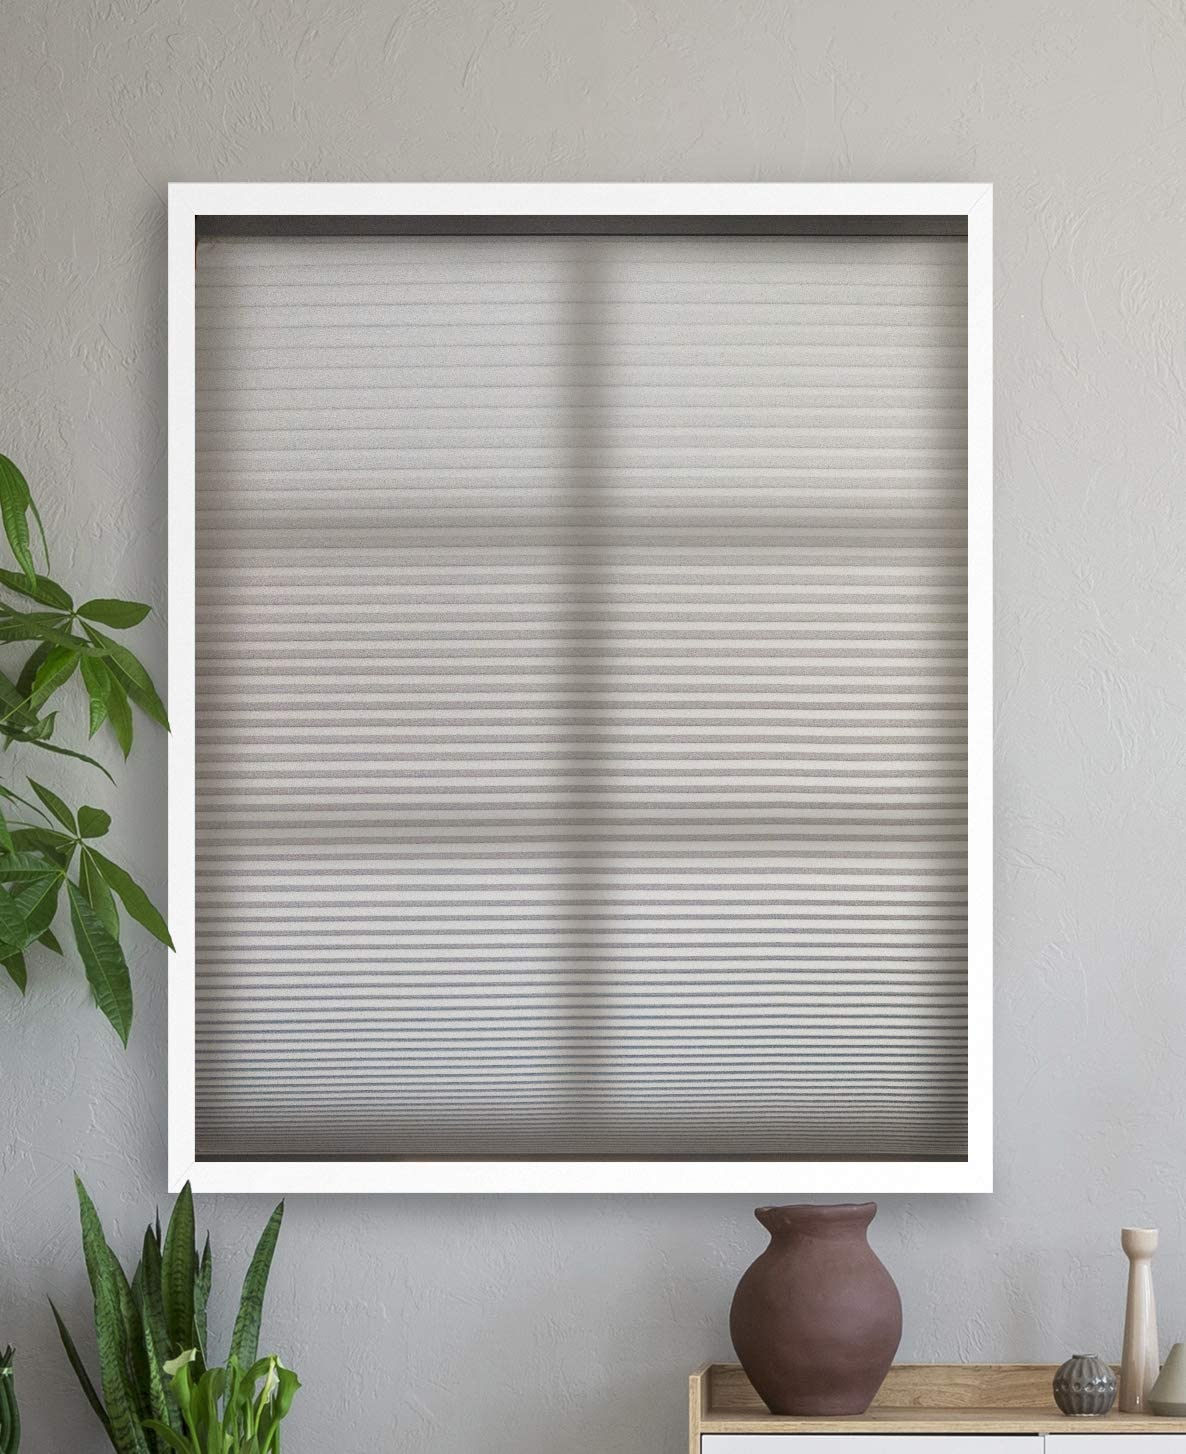 Luxr Blinds Custom-Made Light Recommendation Filtering Challenge the lowest price of Japan Shades Cellular Cordless